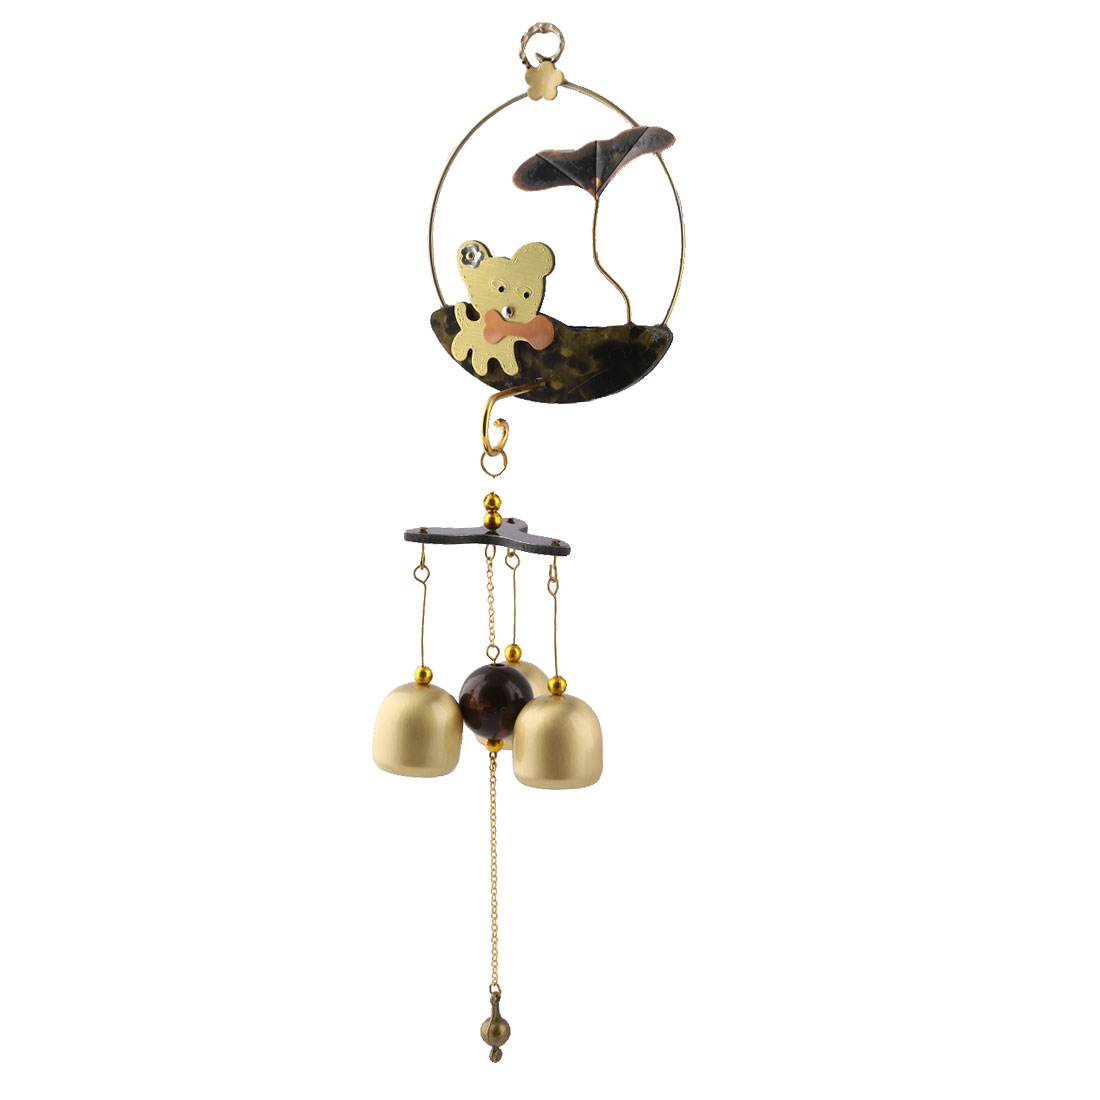 Home Copper Vintage Style Birthday Gift Hanging Decor Wind Bell Chime Windbell